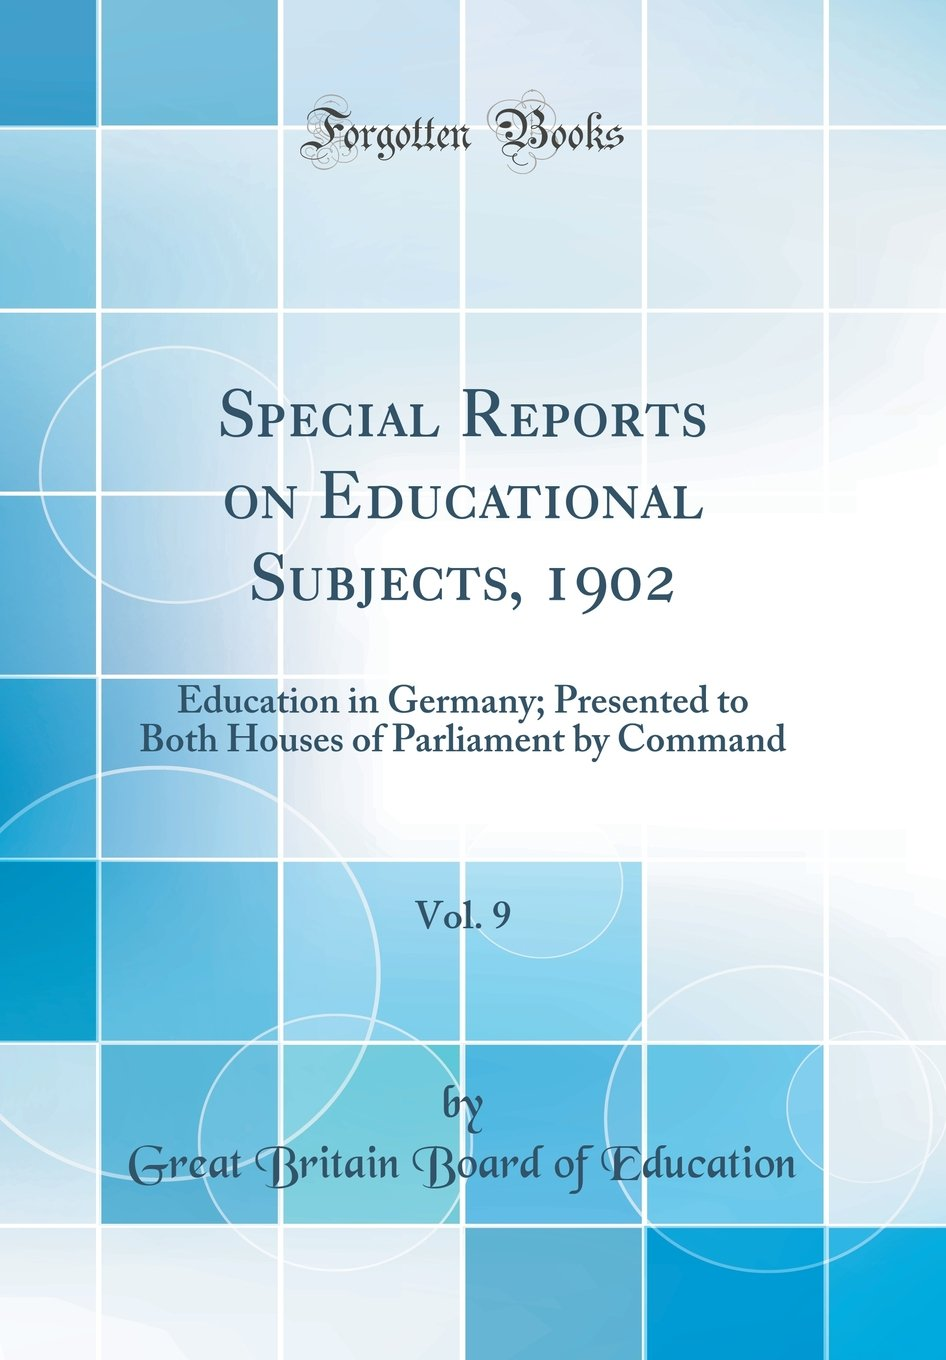 Special Reports on Educational Subjects, 1902, Vol. 9: Education in Germany; Presented to Both Houses of Parliament by Command (Classic Reprint) pdf